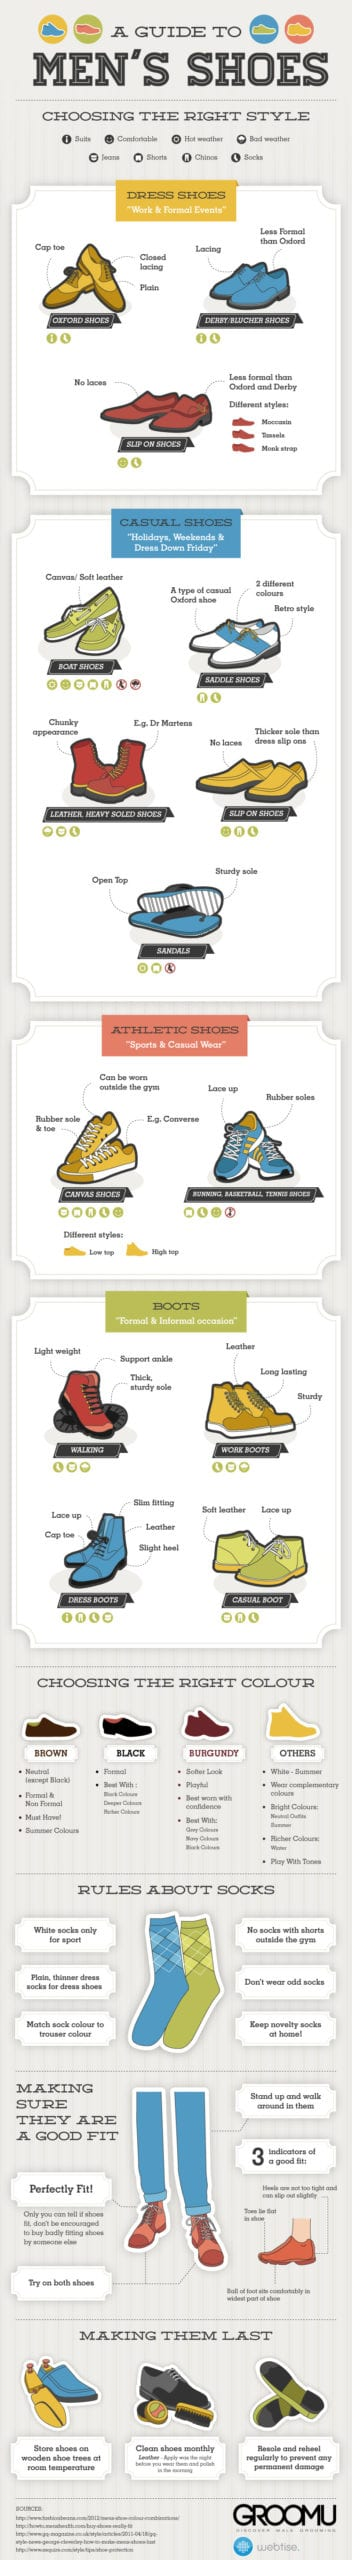 A Buyers Guide To Mens Shoes